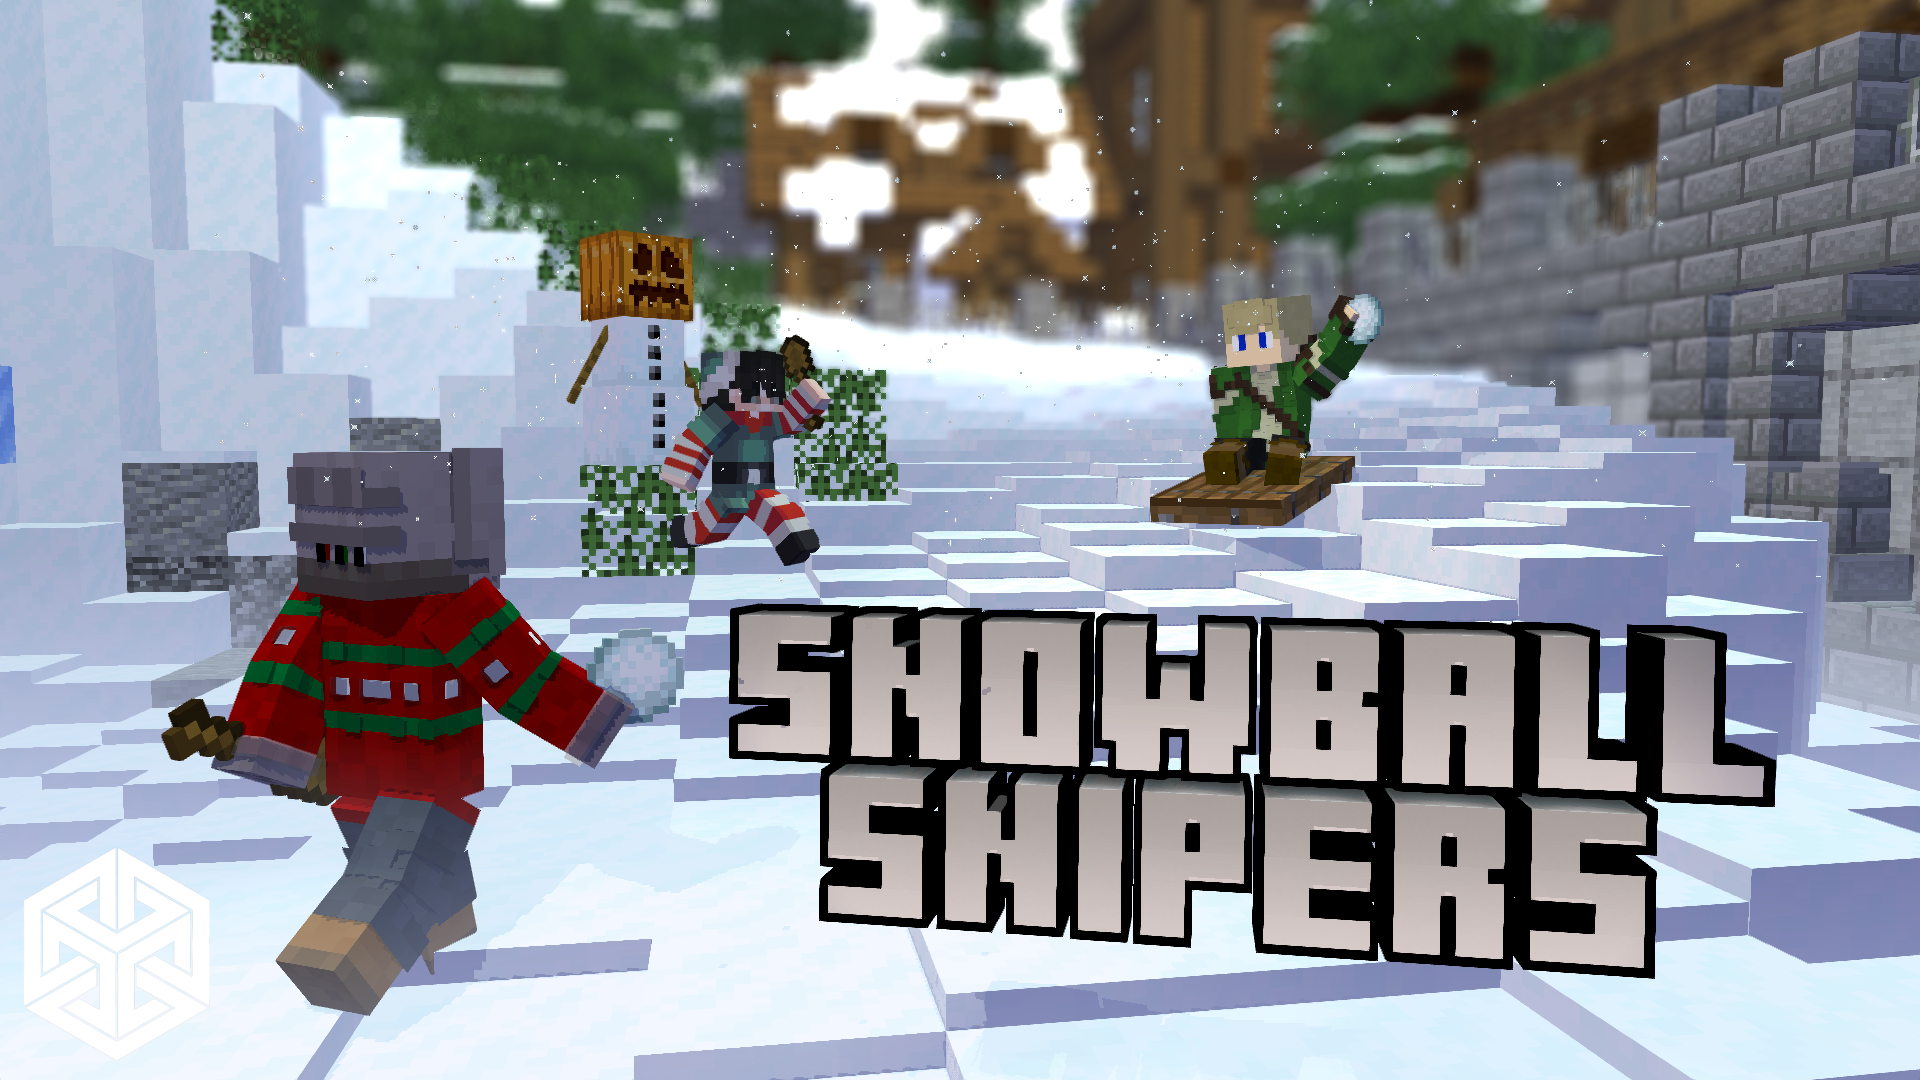 Snowball Snipers